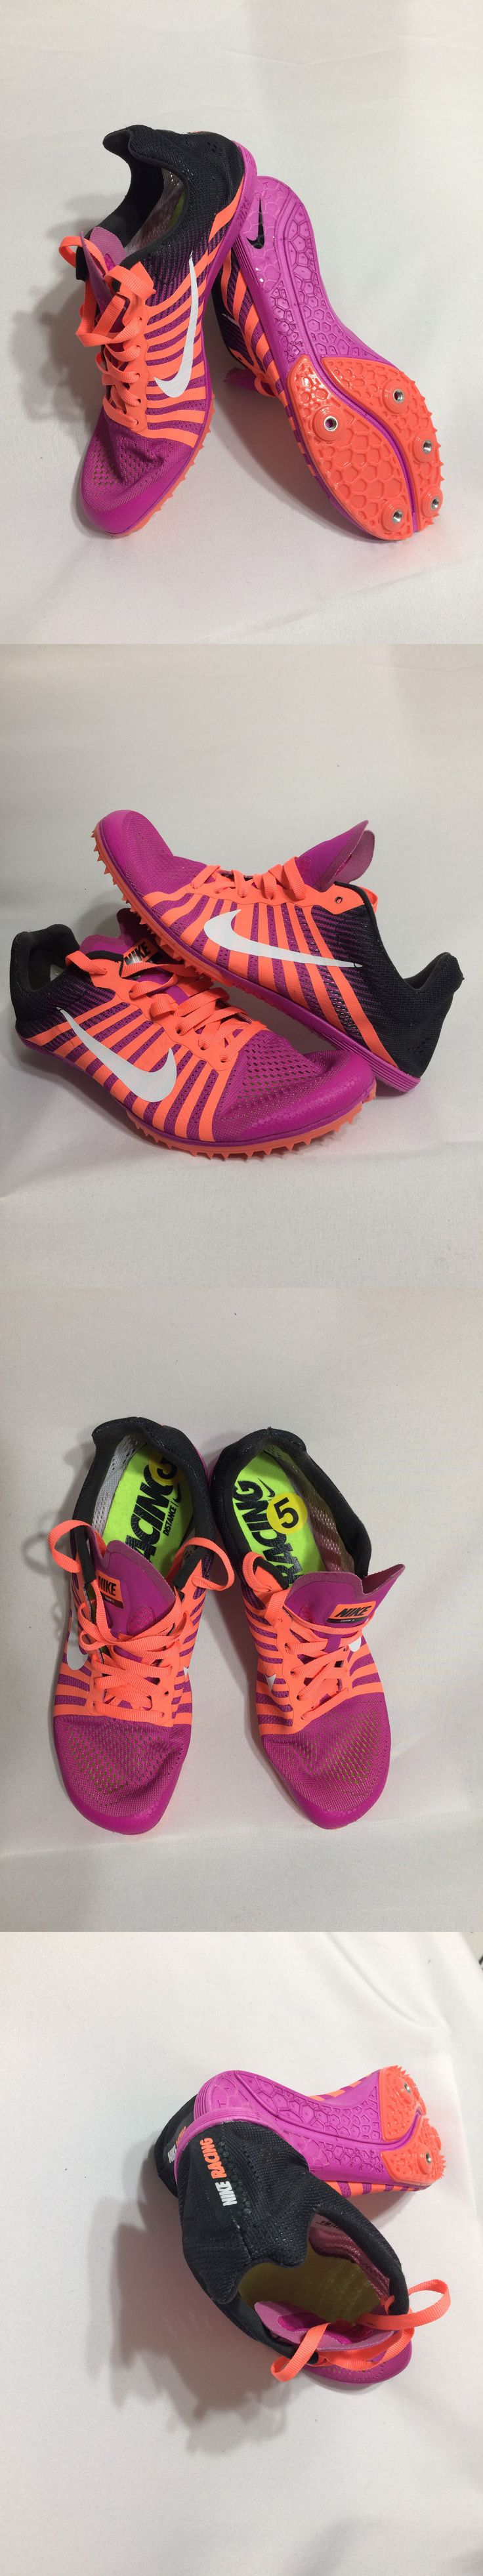 Track and Field 106981: Nike Zoom D Distance Size 5 Racing Track Spikes Fire Pink Purple Track Shoes -> BUY IT NOW ONLY: $32.99 on eBay!